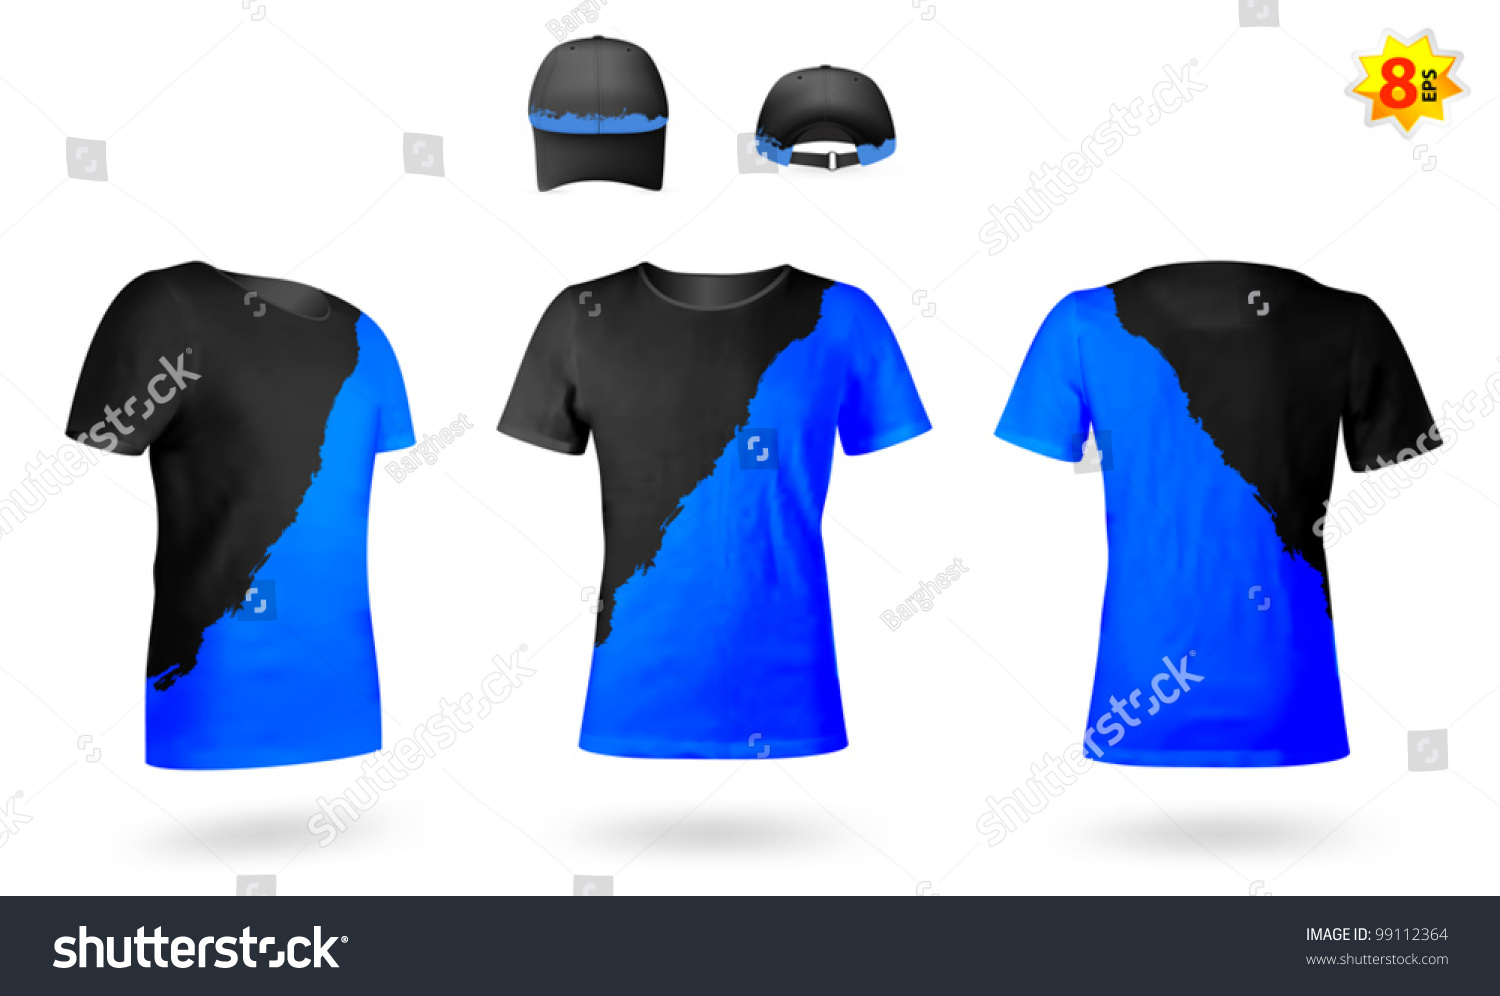 Design template twocolor tshirts stock vector 99112364 for Two color shirt design